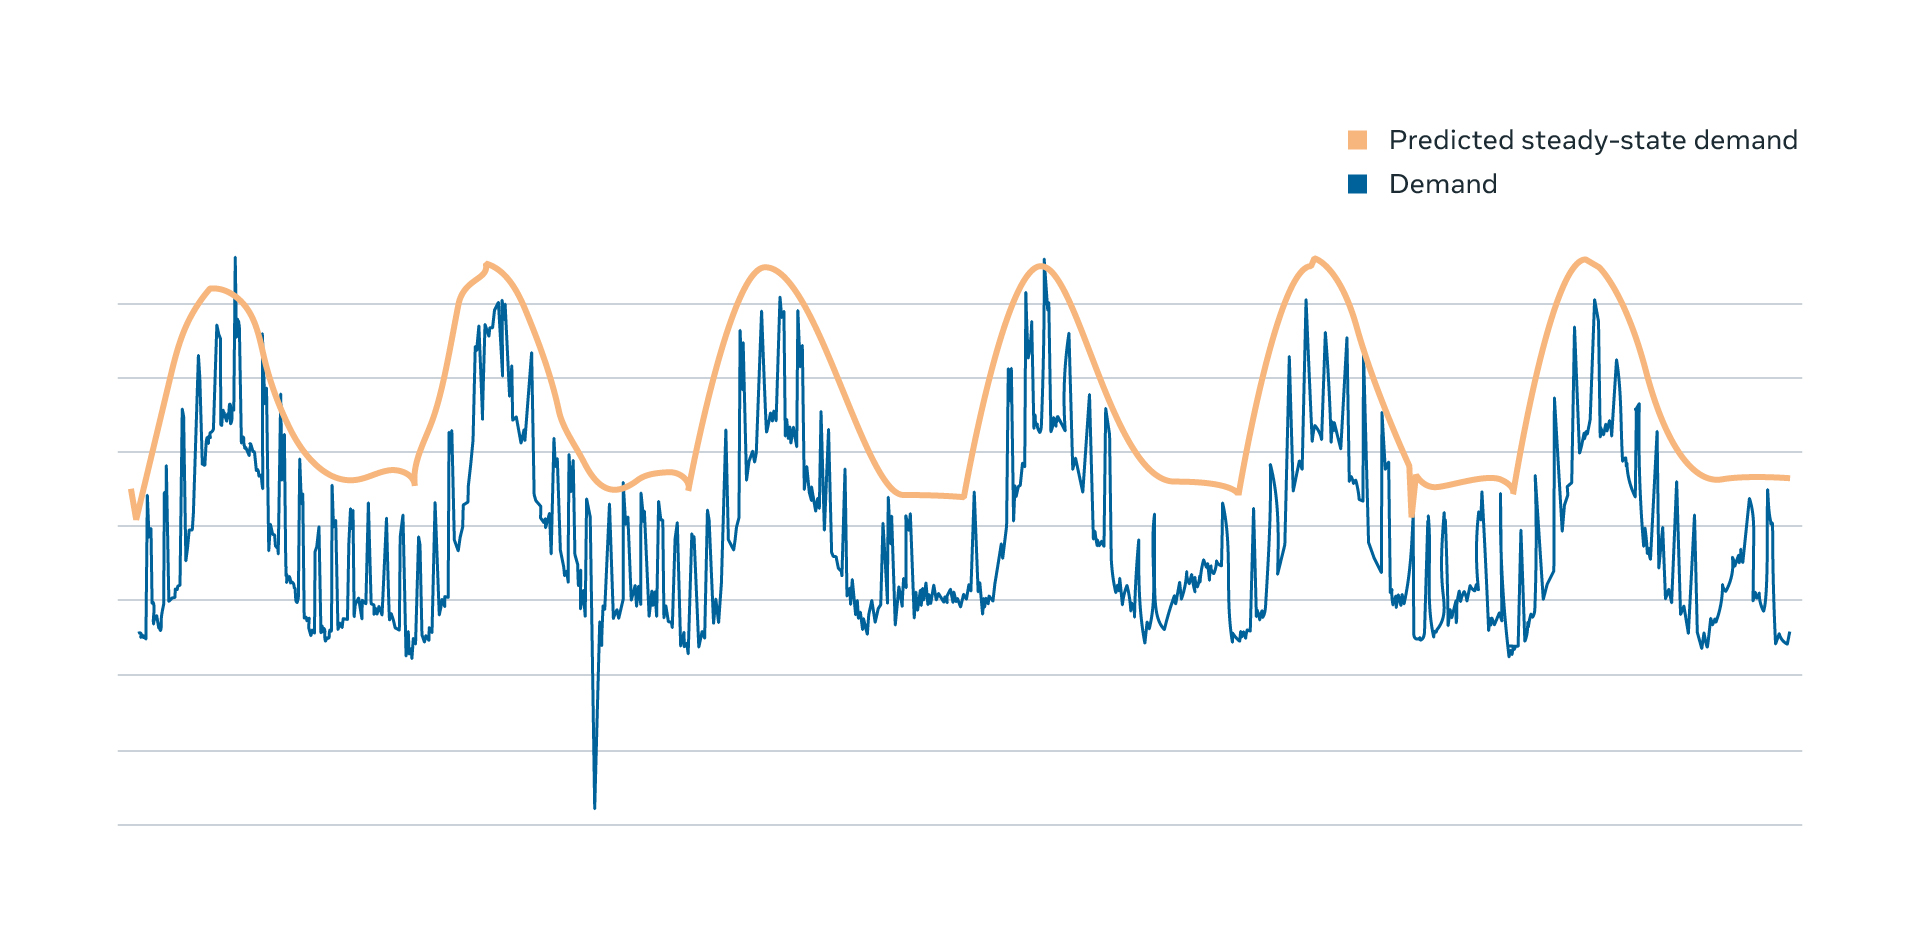 The demand for the web tier (blue line) and the predicted steady-state demand (orange line). The predicted demand is stable, reducing high order terms, but closely follows the actual demand pattern.